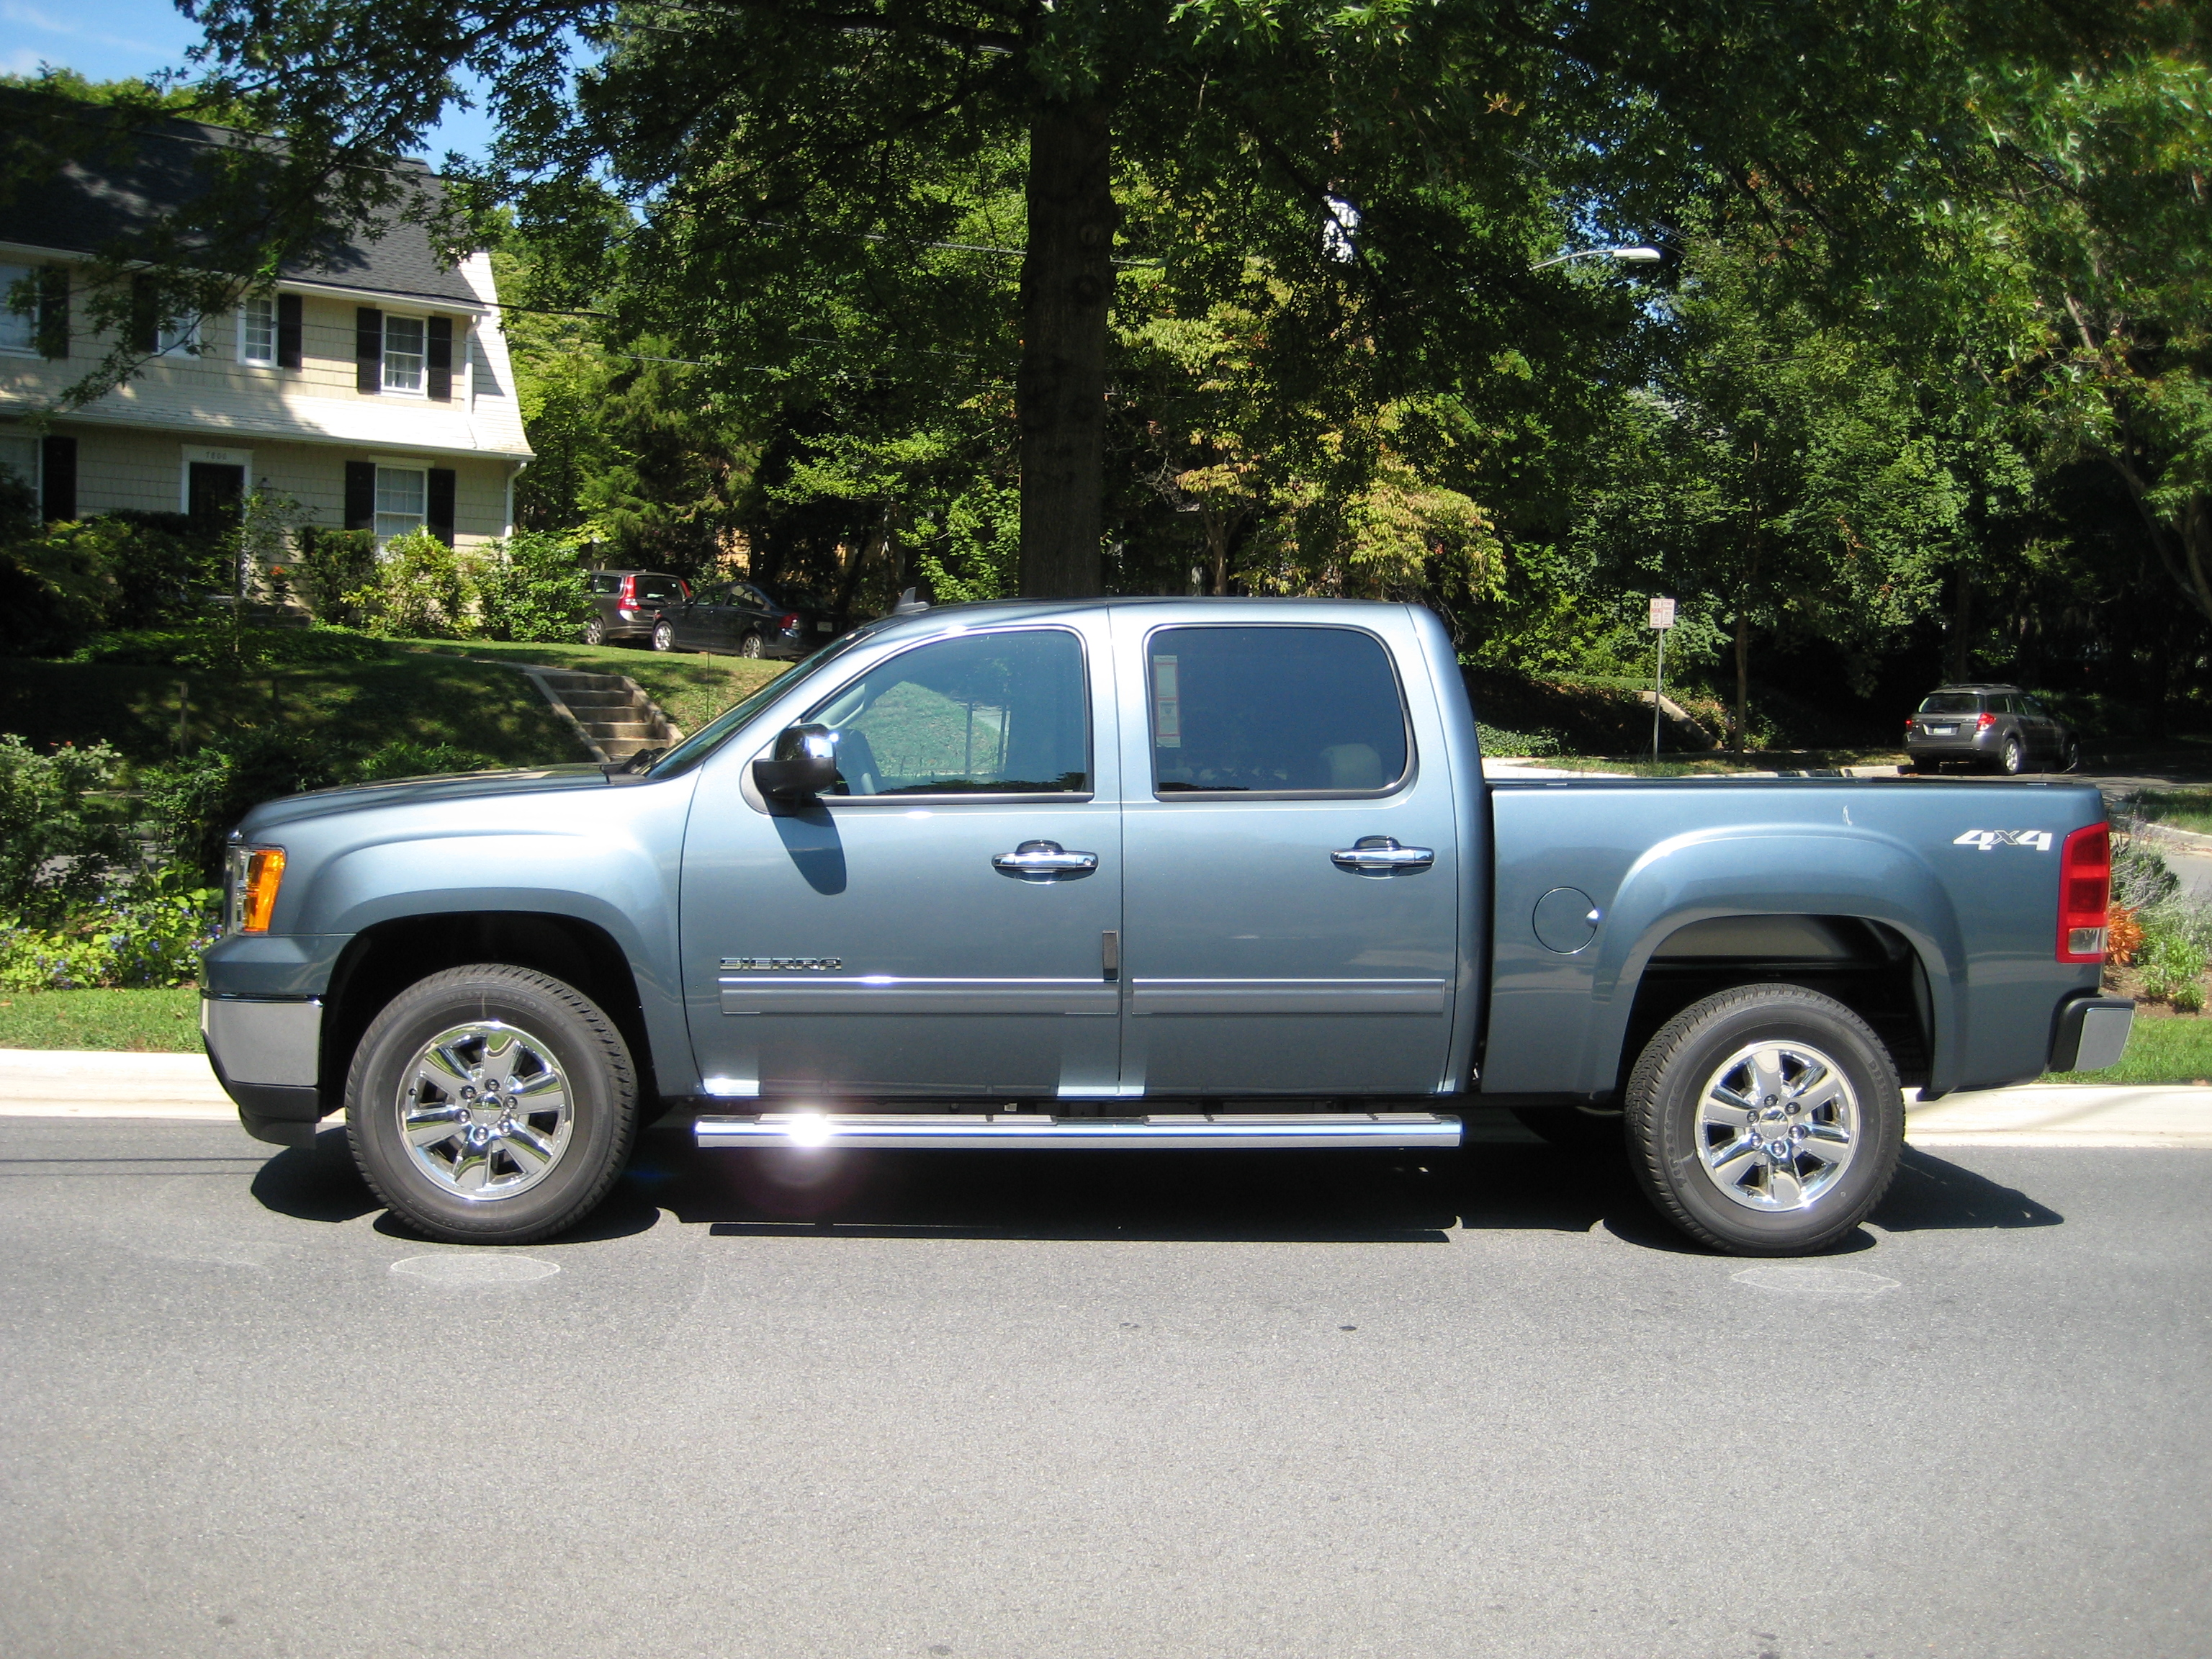 2011 Gmc Sierra 1500 - news, reviews, msrp, ratings with amazing ...